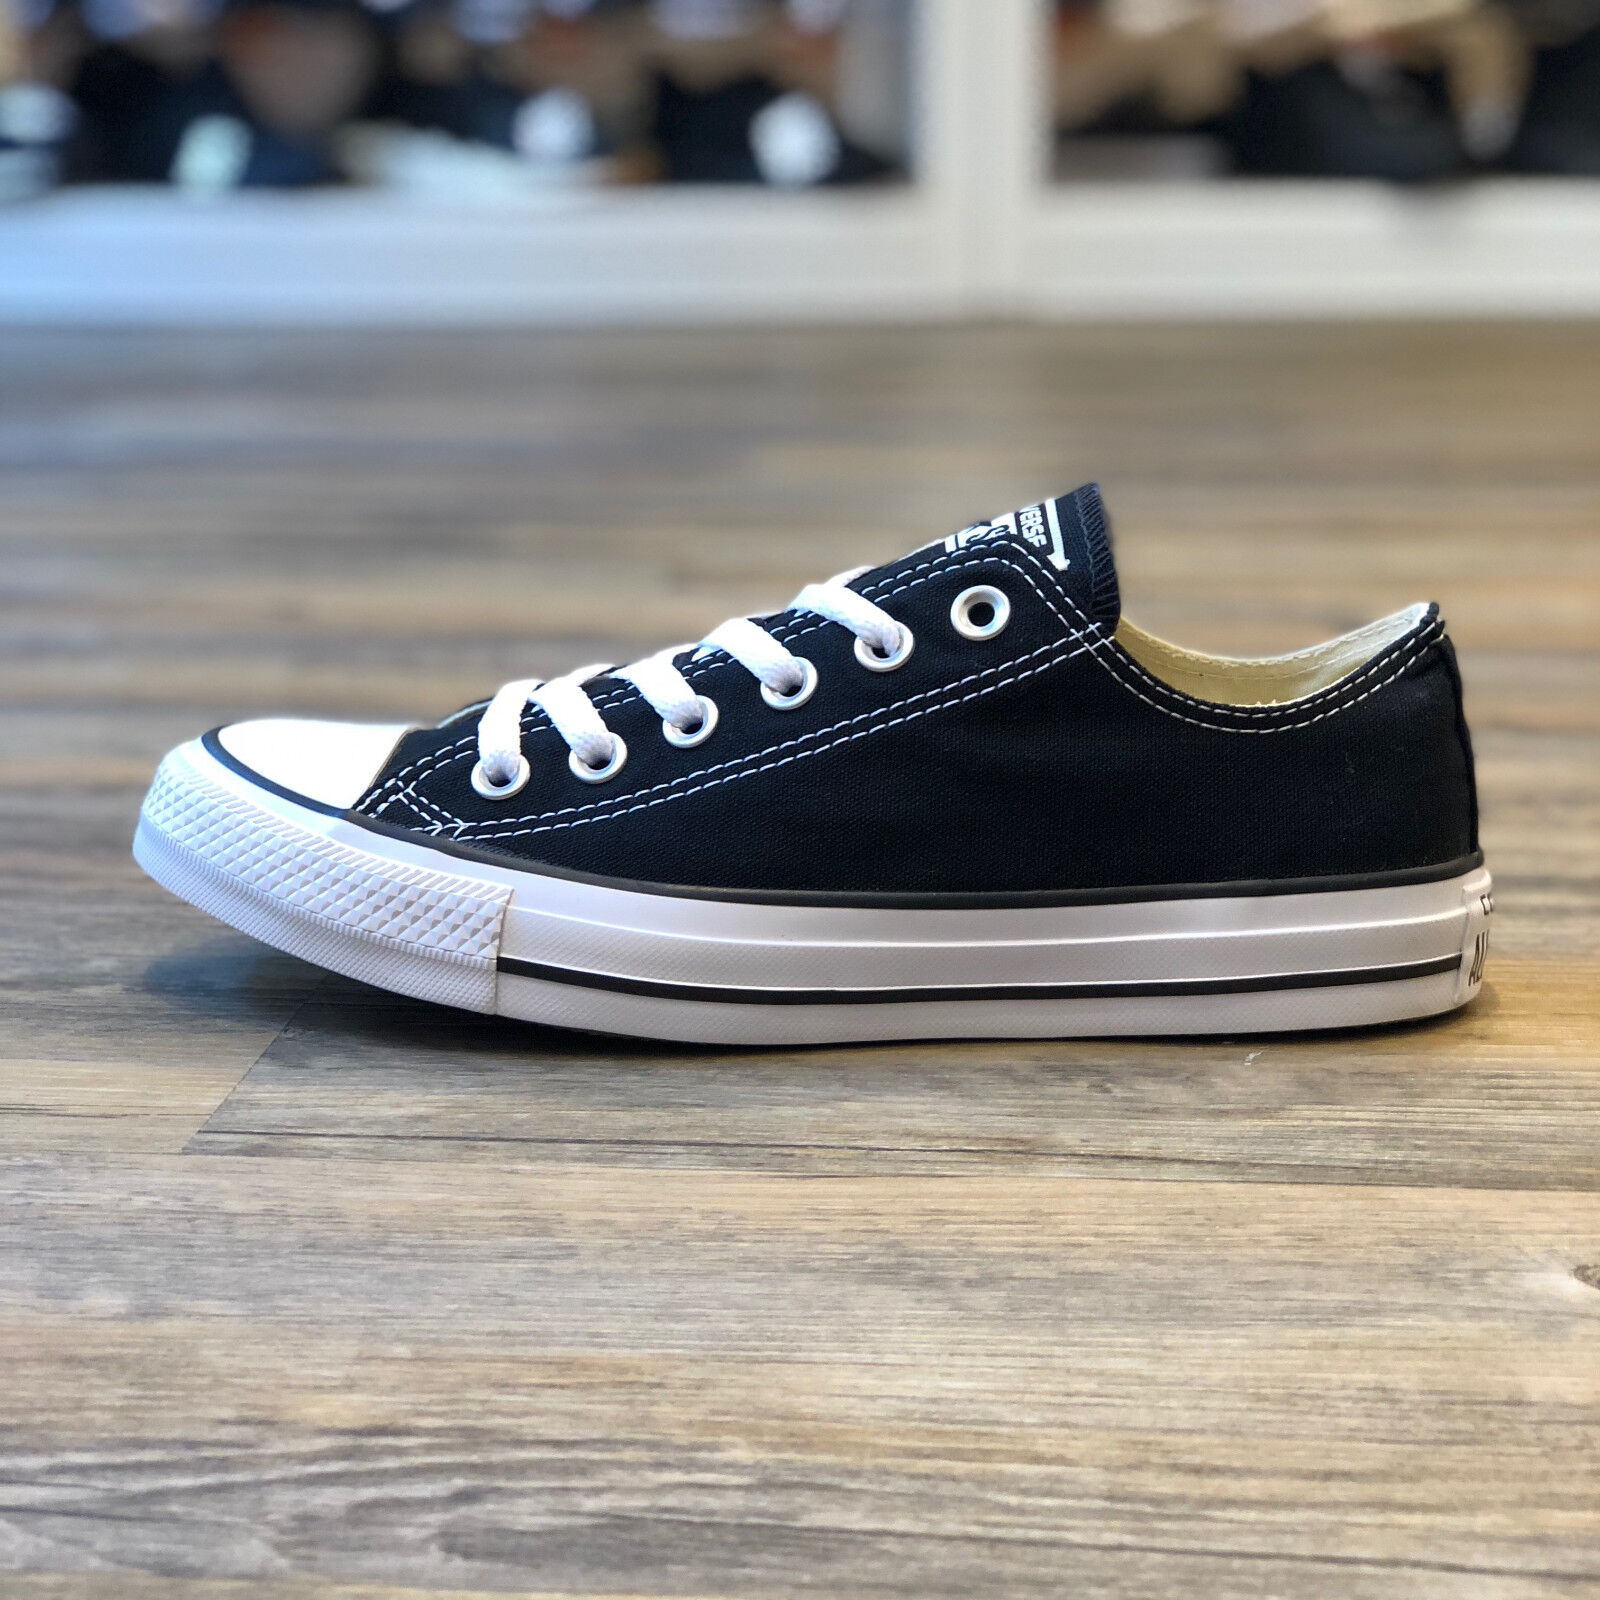 info for 231ad a7095 Converse All All All Star OS Low Taille 39,5 Noir Chaussures Turn Sneaker  Black Femmes m9166c 17c994